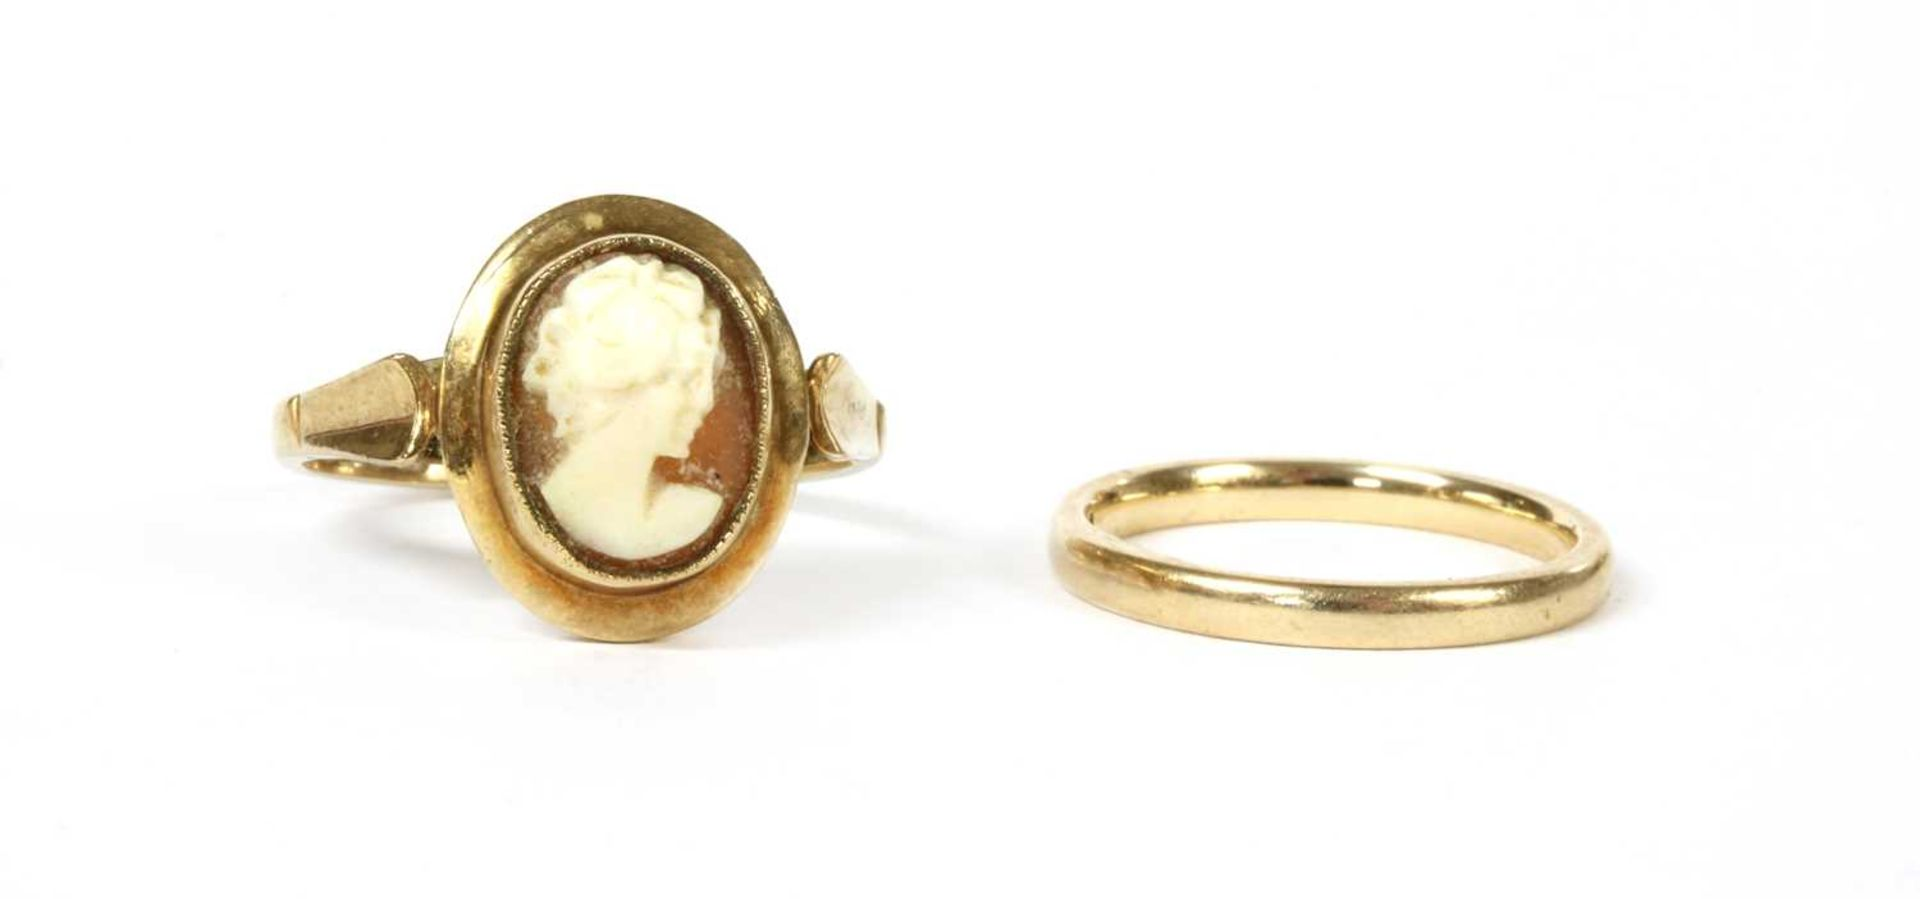 A 9ct gold court section wedding ring,